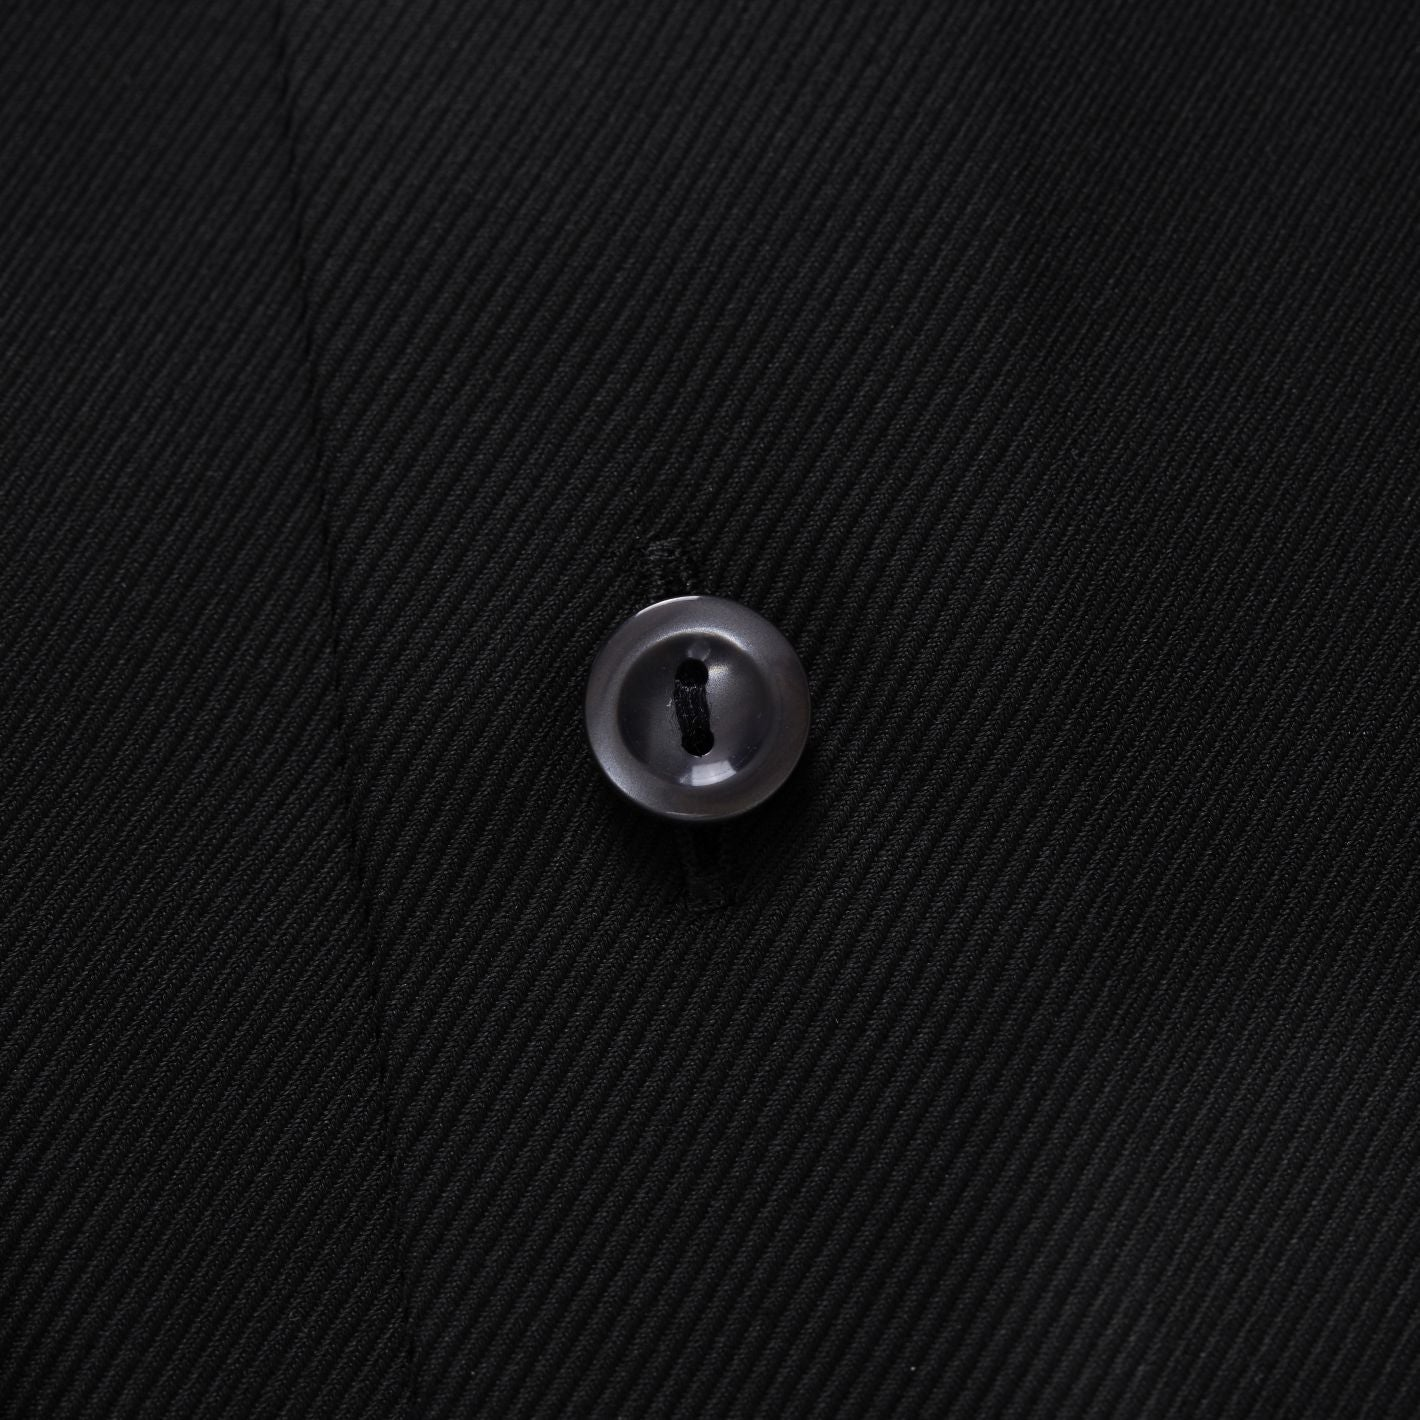 ETON brand premium quality men's formal shirt in black textured twill